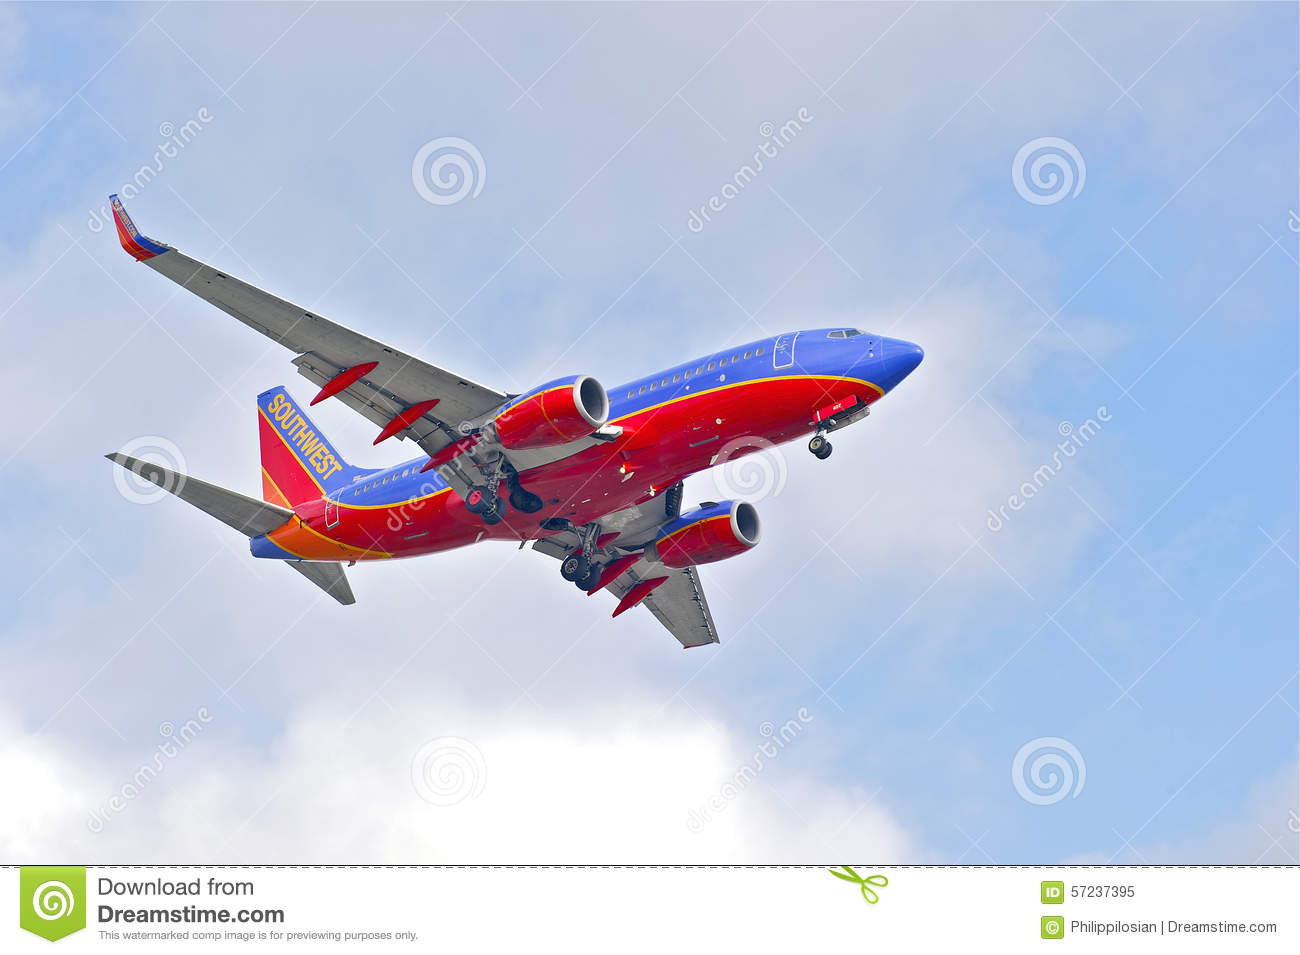 Southwest Airlines Commercial Jet Editorial Image.